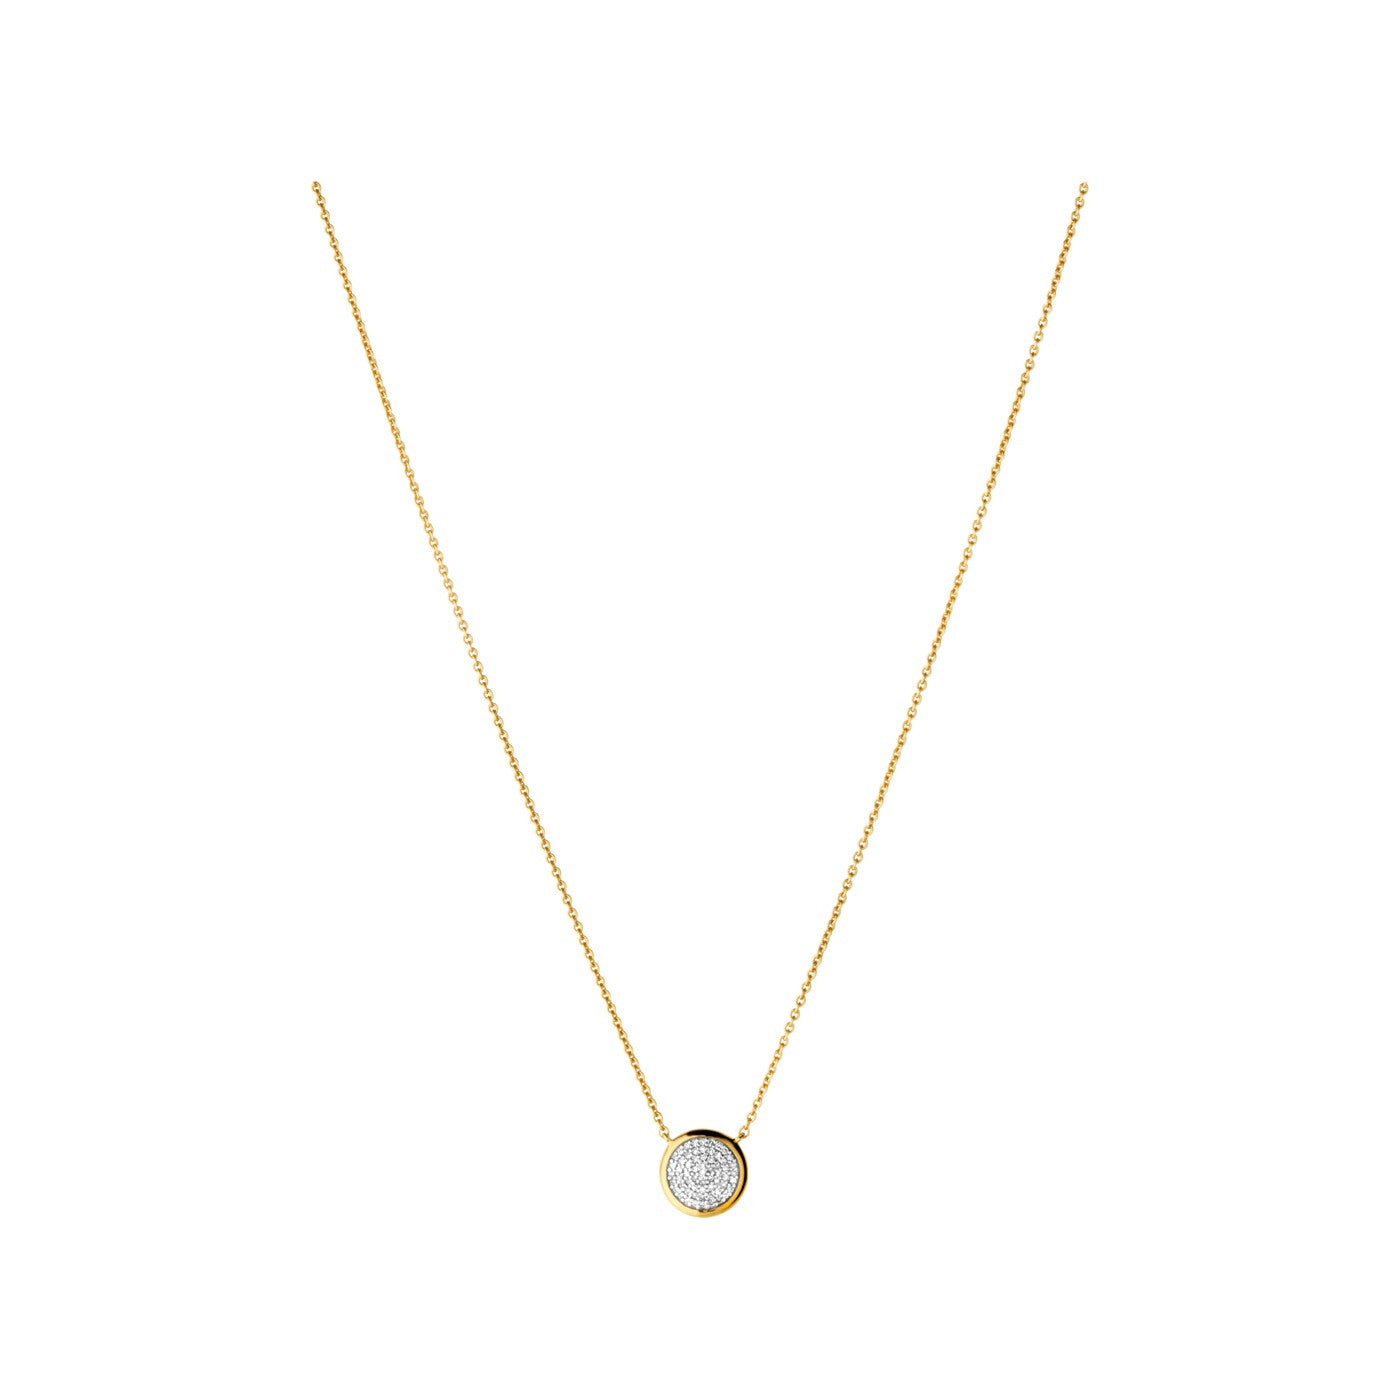 Links of London Diamond Essentials Pave Round Yellow Gold Vermeil Necklace - 5020.2725